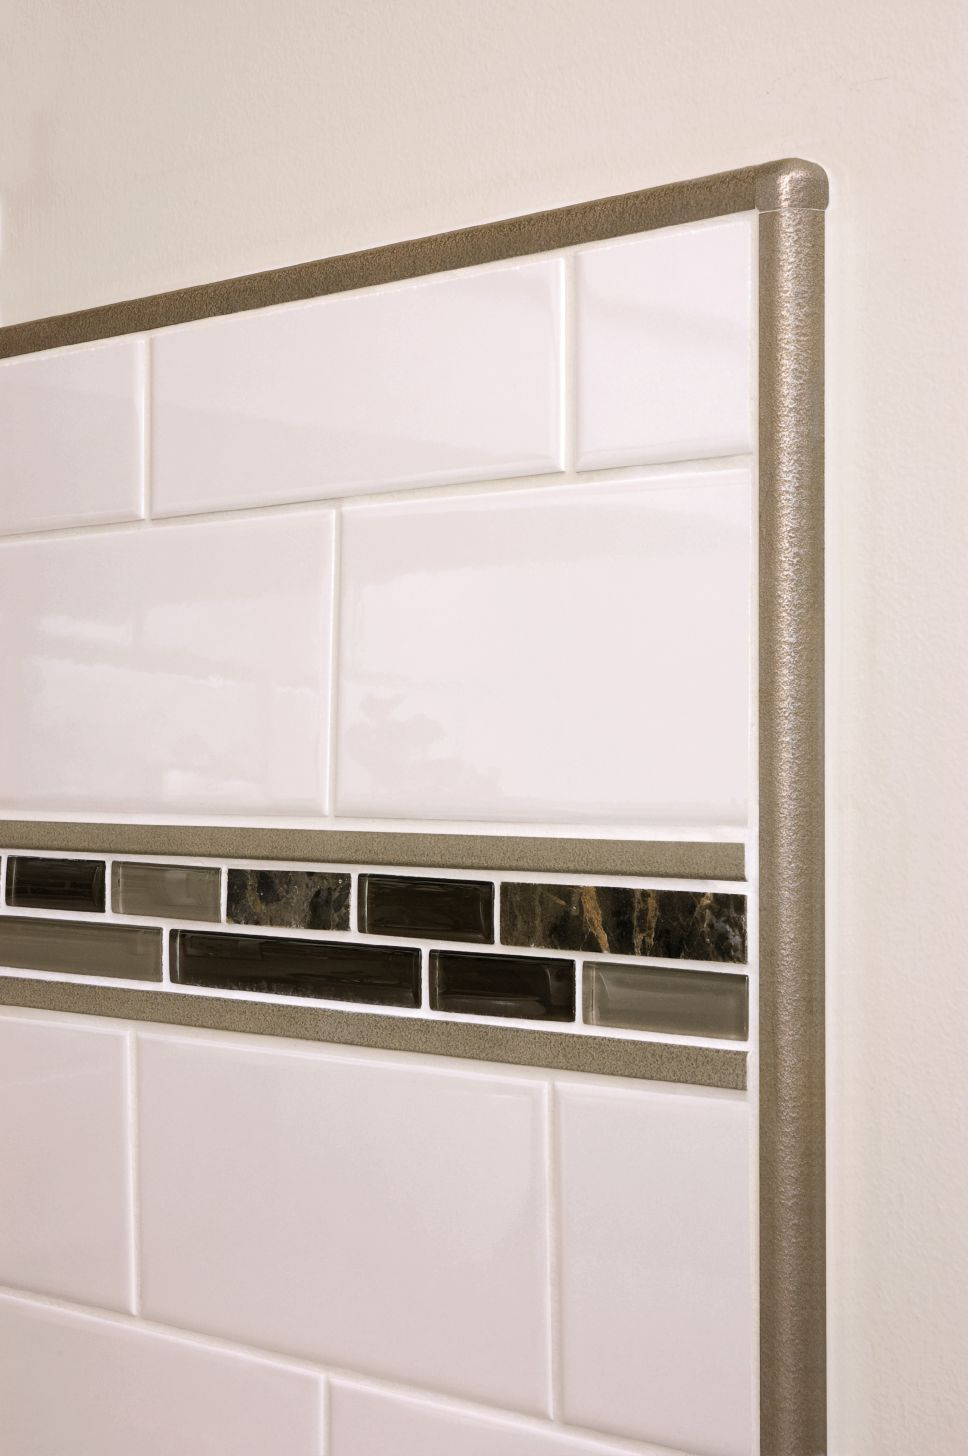 Genial RONDEC Bullnose Profile Used To Finish The Tile Edges Of The Backsplash.